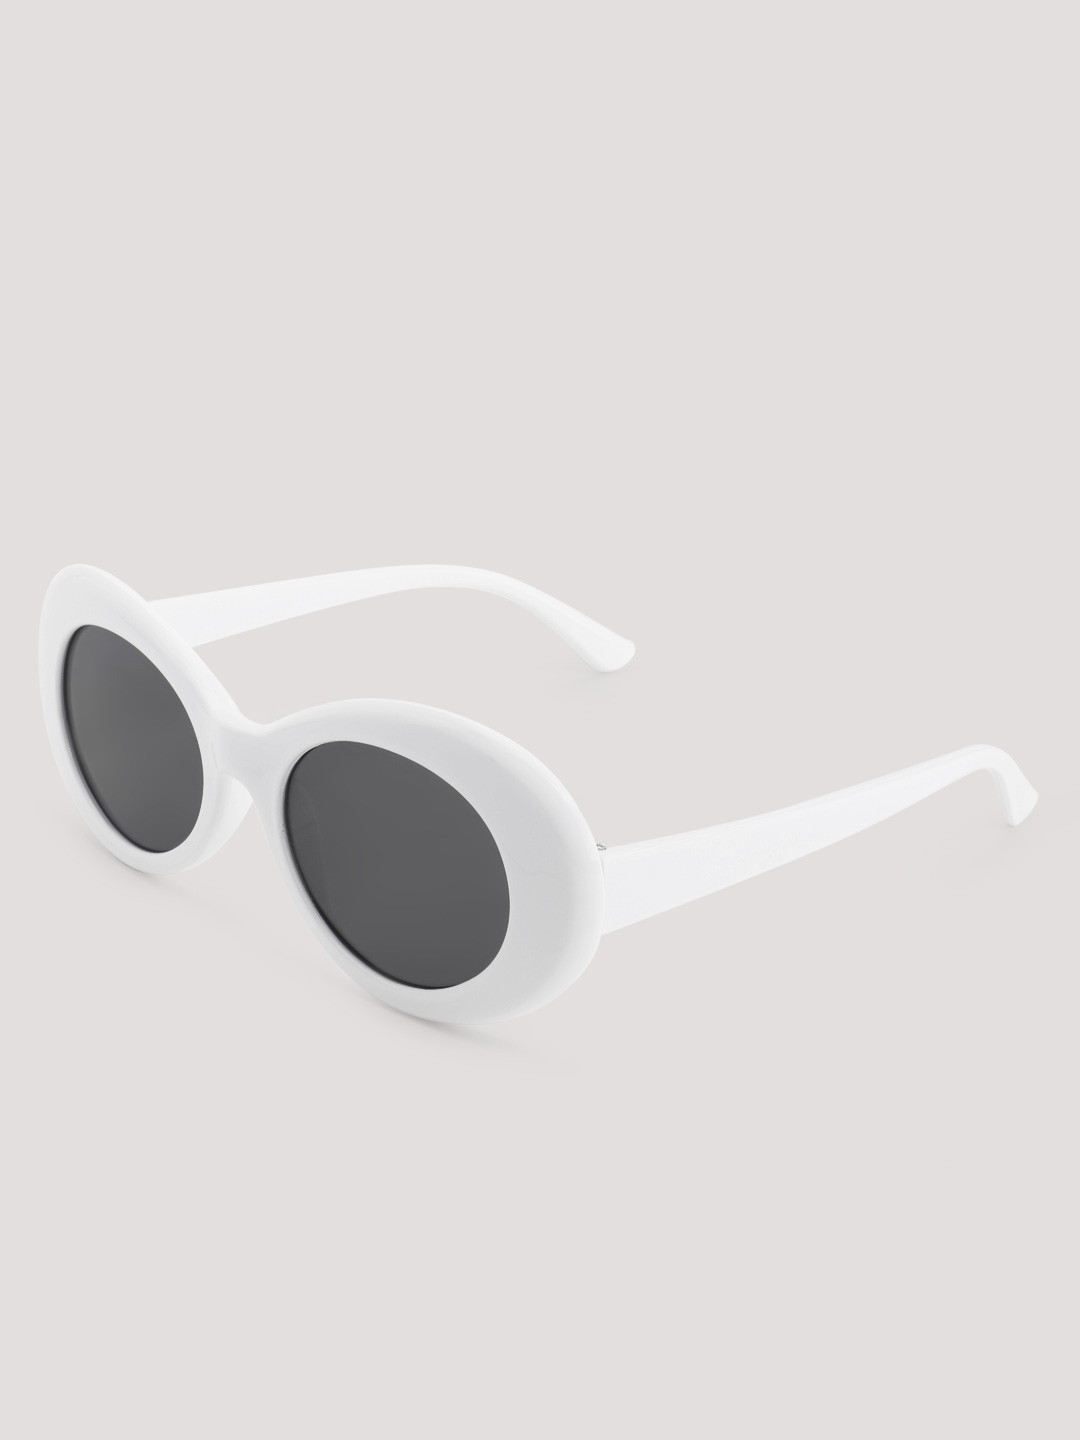 Sneak-a-Peek White Thick Elliptical Retro Sunglasses 1